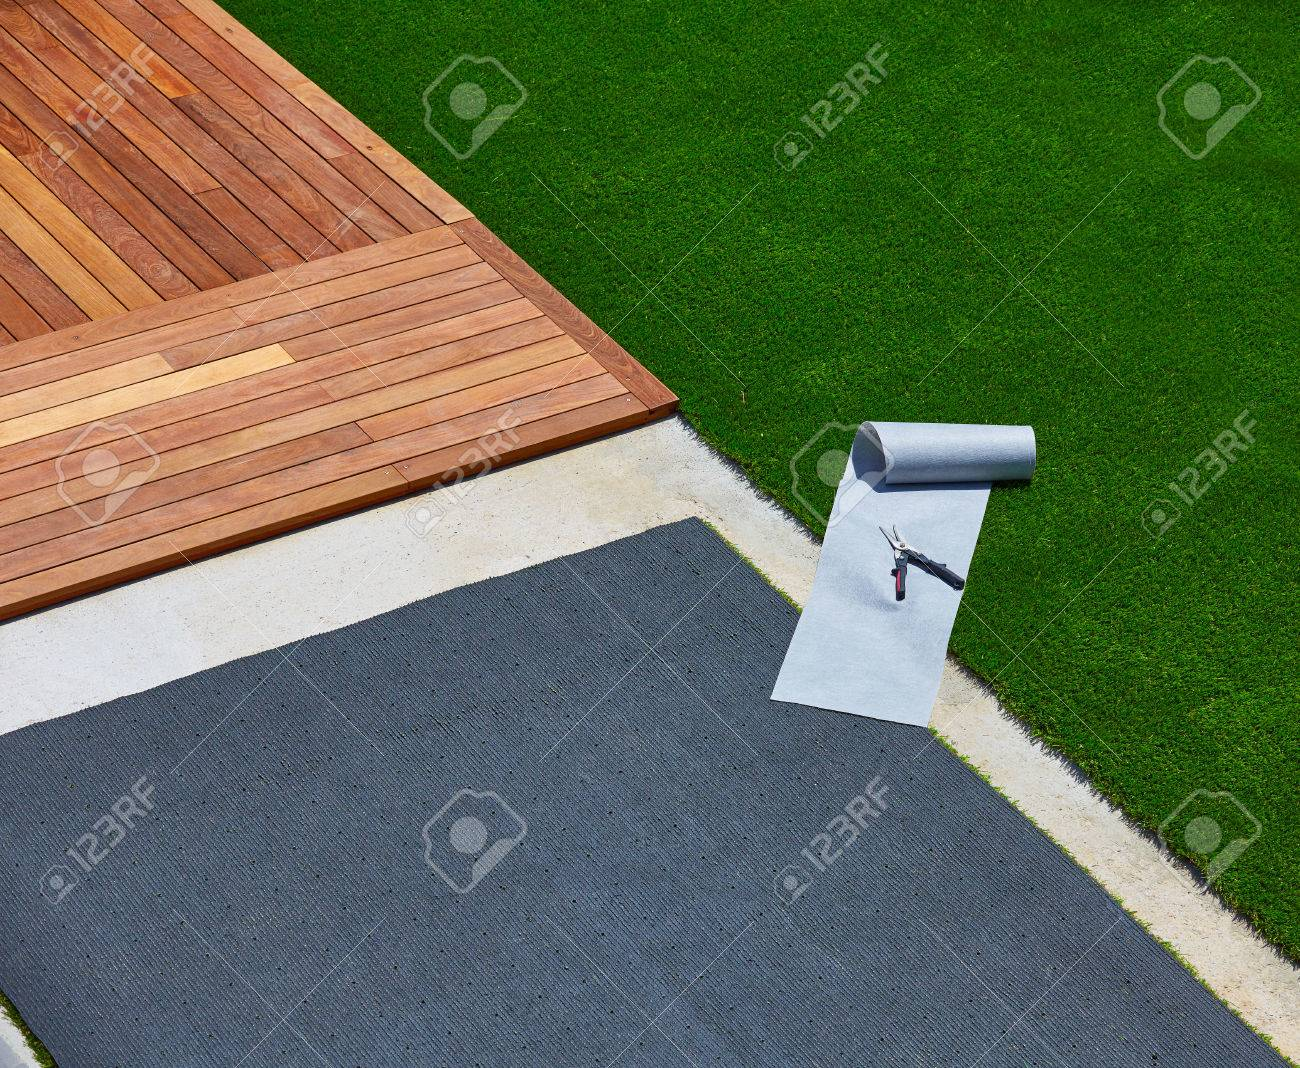 Artificial grass turf installation in deck garden with tools